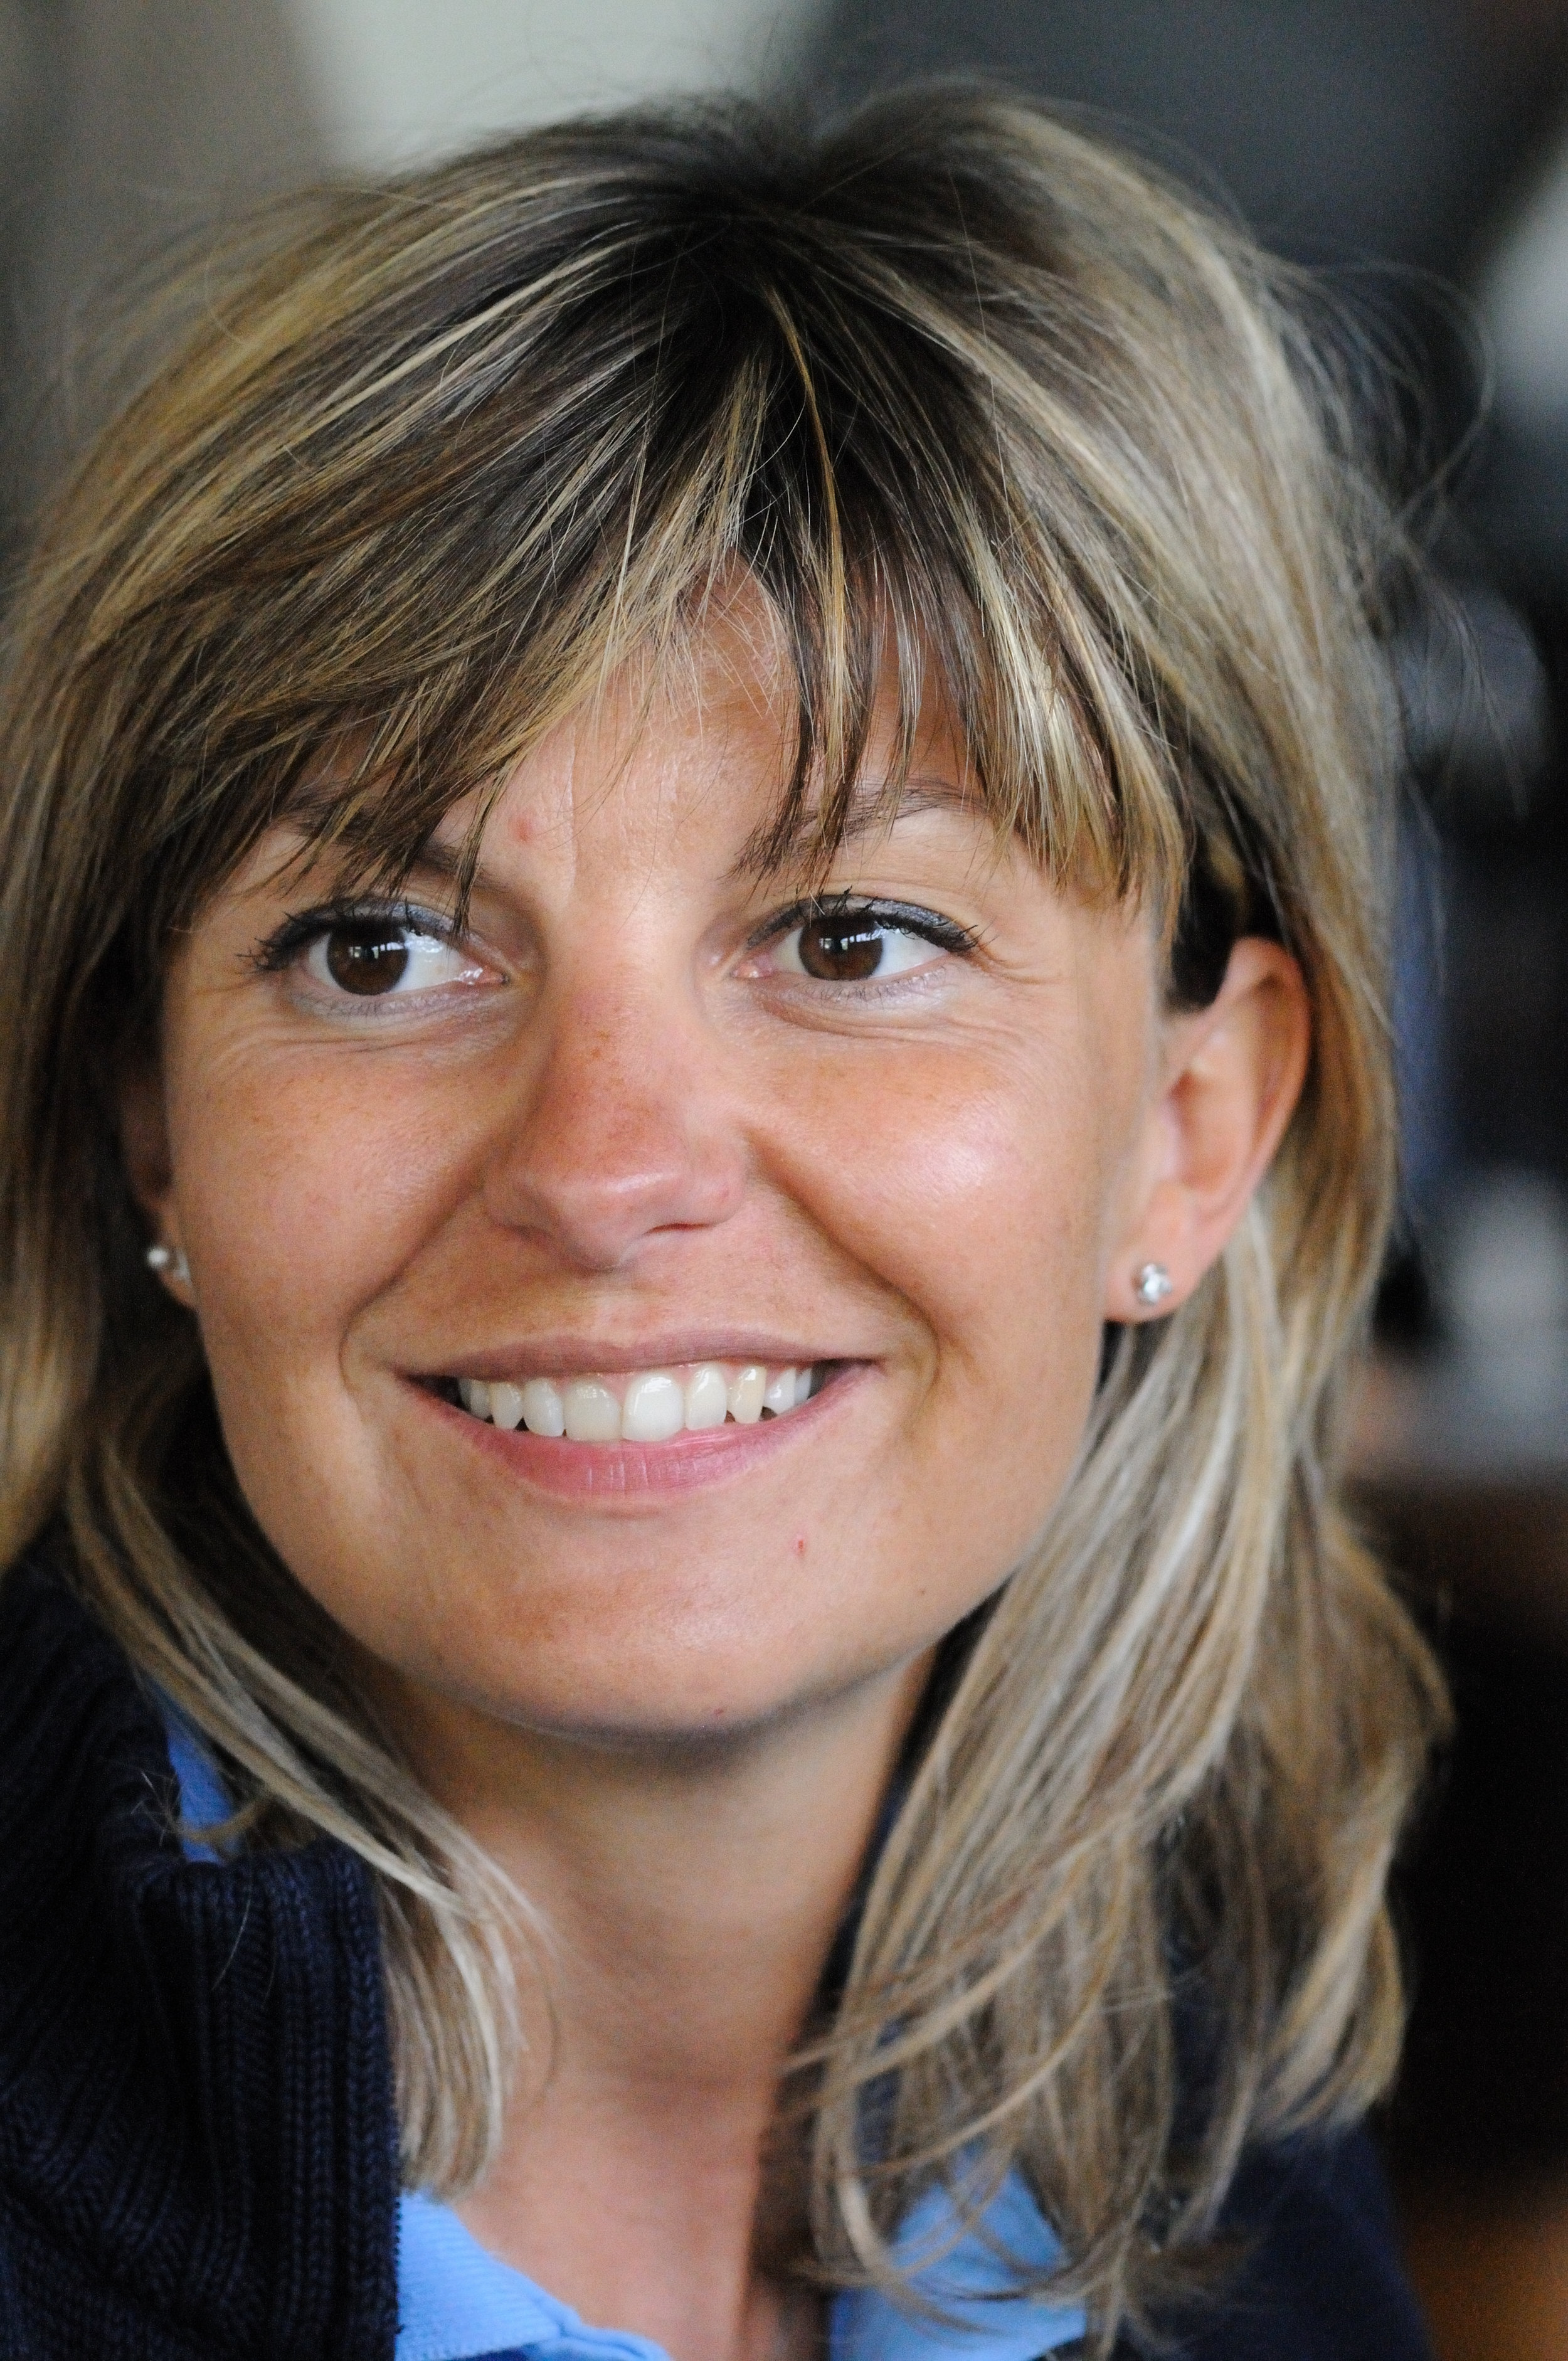 JOLE DELLAPIANA - Born in 1974, Jole is Ernesto Dellapiana's doughter. She studied in Alba and at the University of Turin, Pedagogy and Science Education. Today she has begun to deal particularly herself with the commercial and bookkeeping management of the firm.  She is responsible for the winery visitors and she will wait for communicate the culture, wines and history of the family cantina. Jole has also two children, Jacopo(2008) and Andrea(2011) too young, but we're waiting for them.